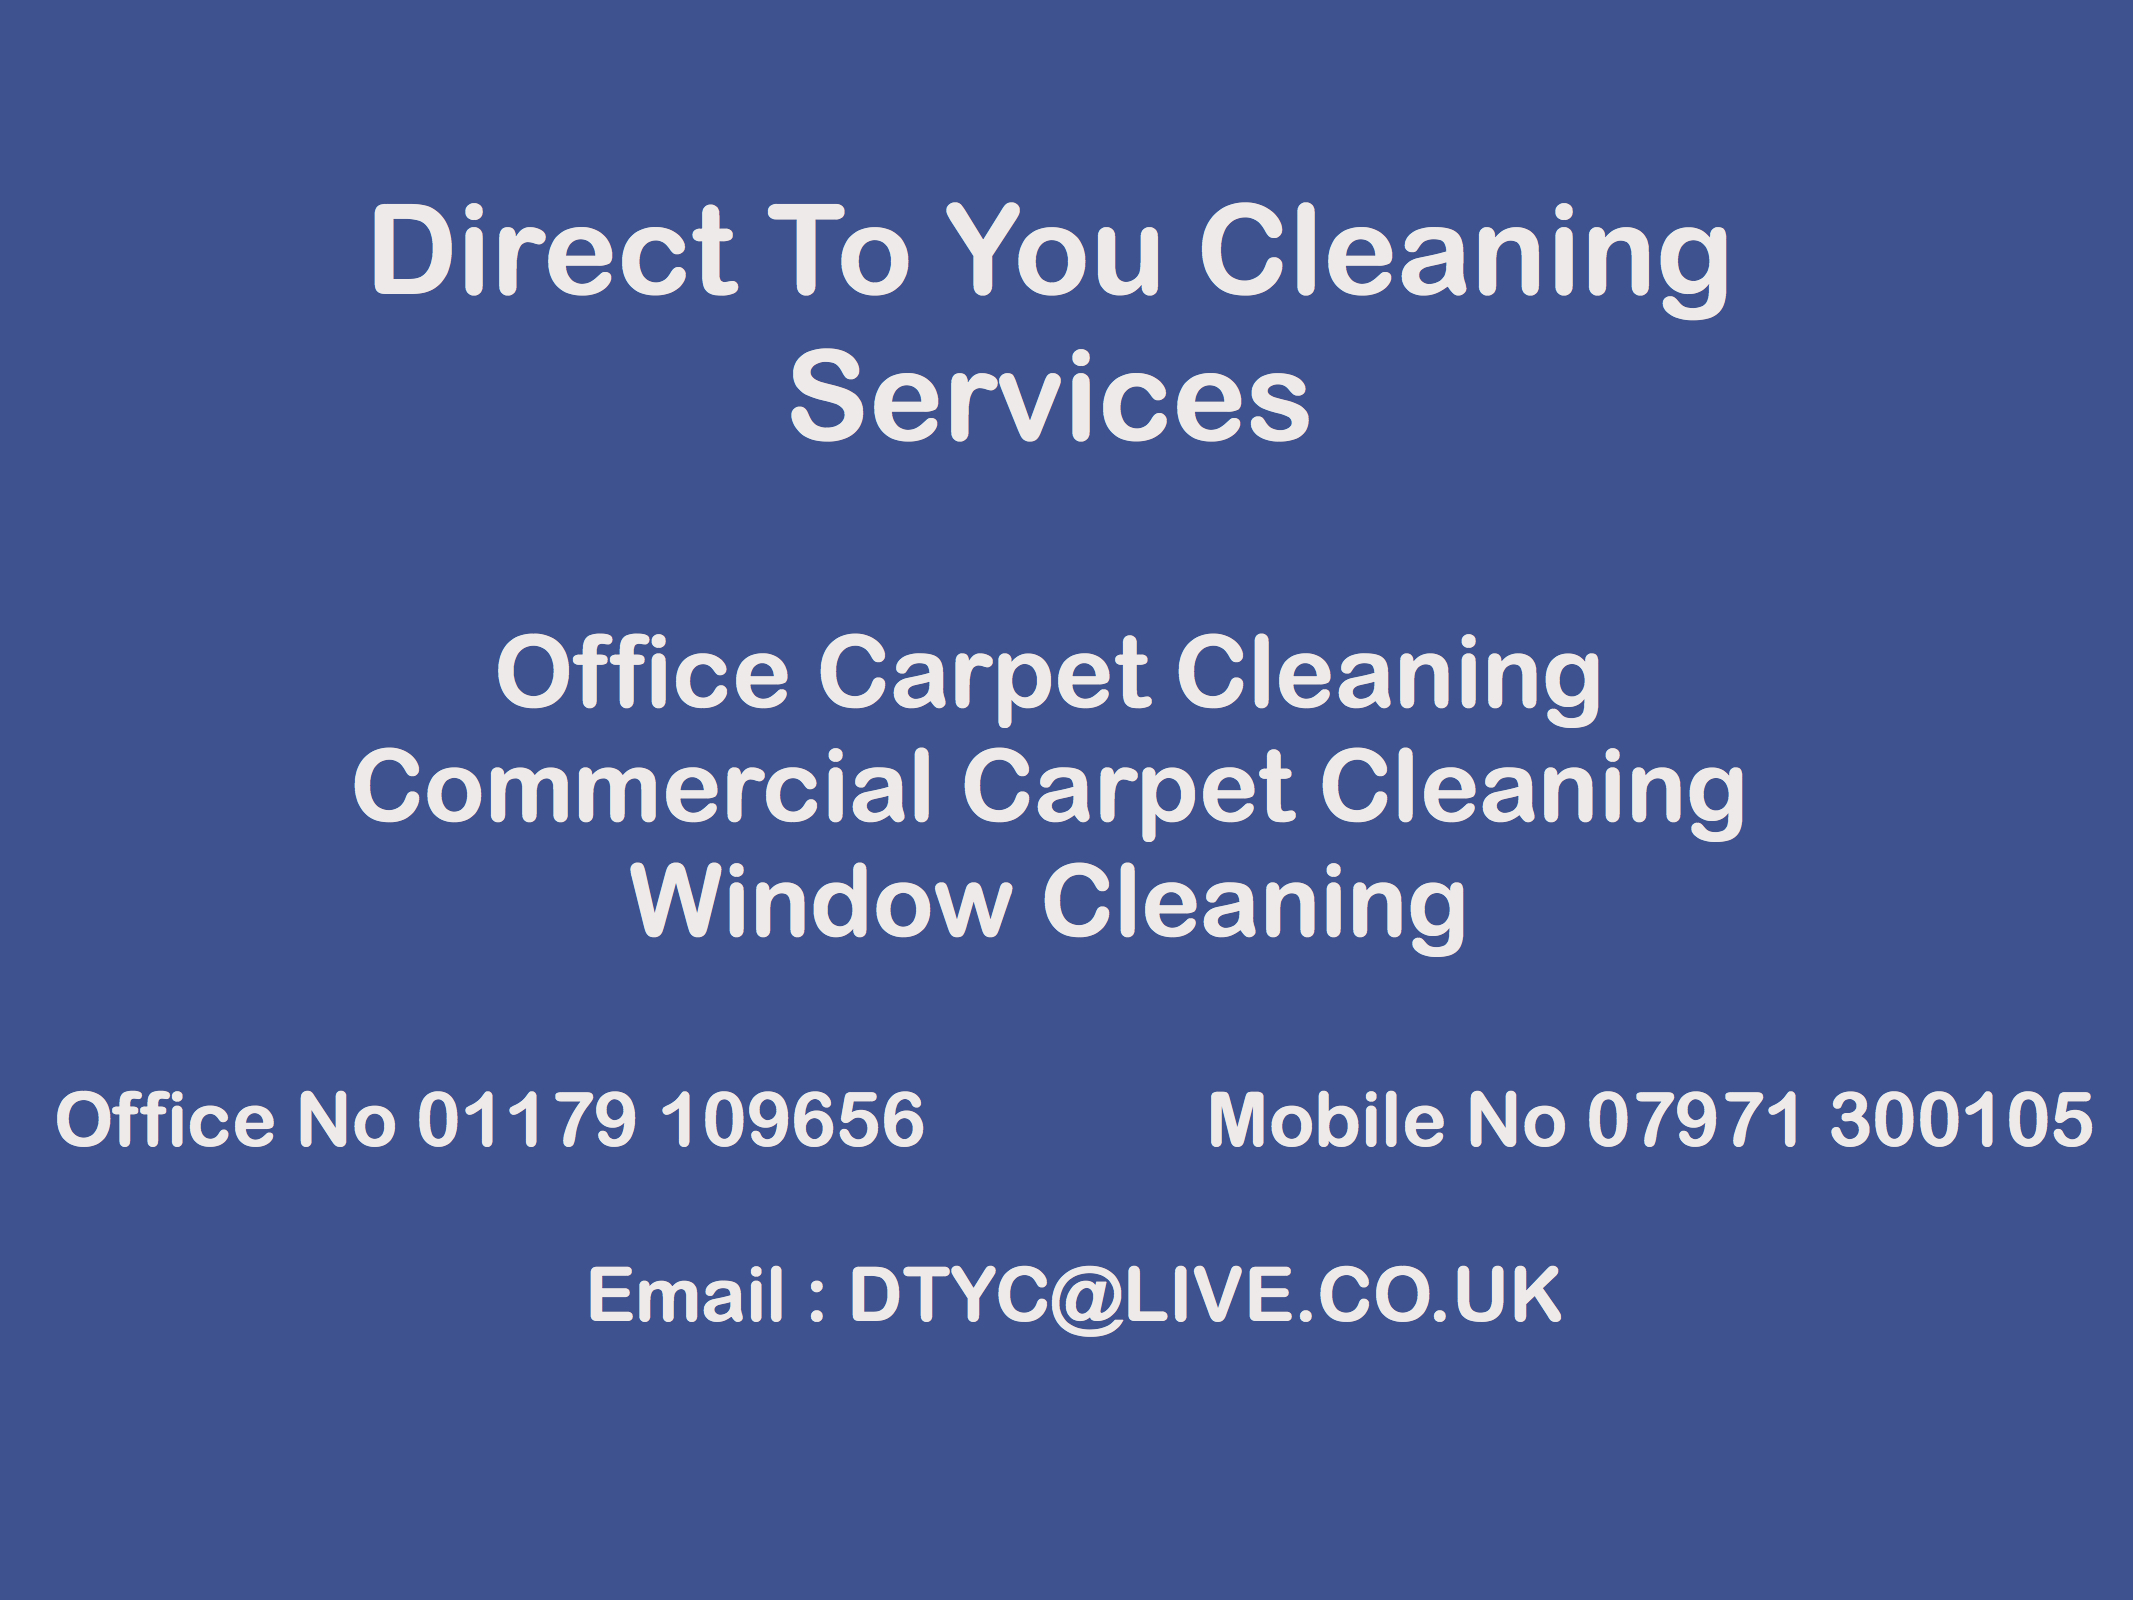 Direct To You Cleaning